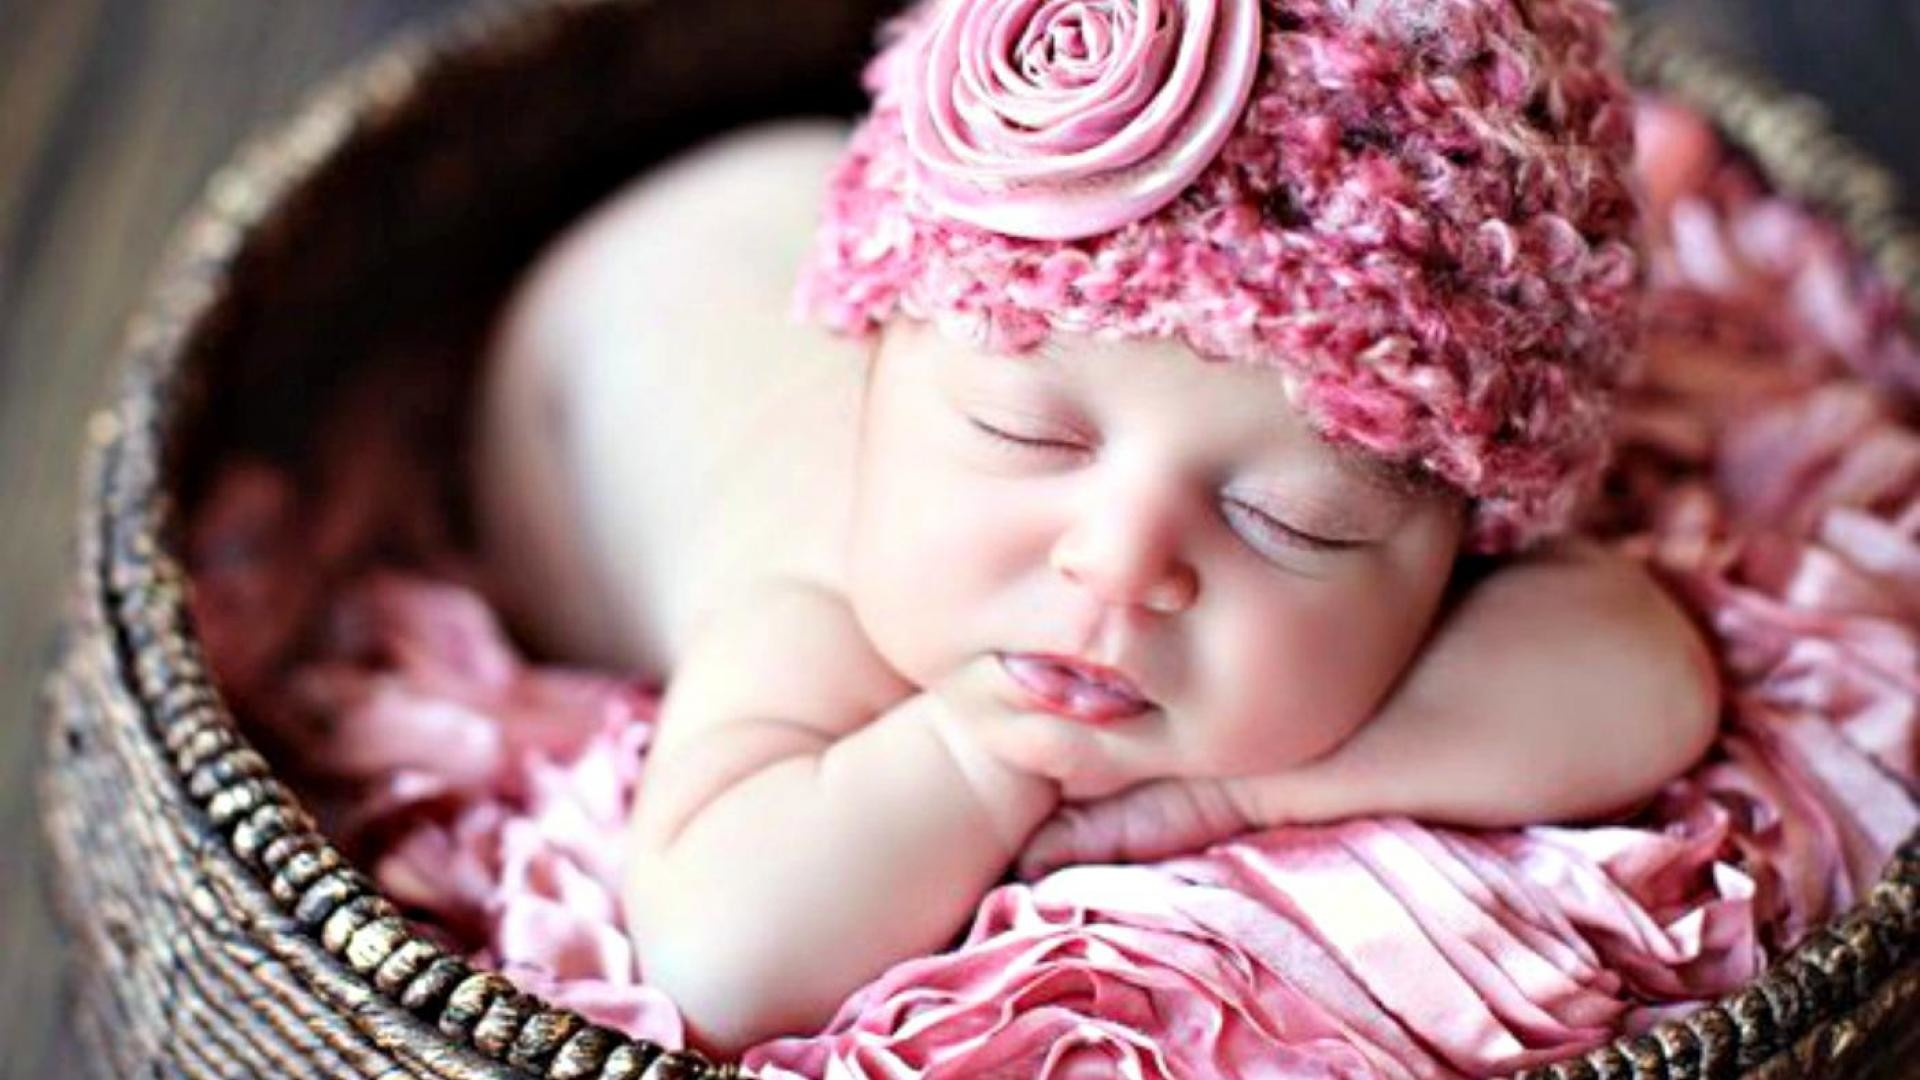 1920x1080 Cute Baby Wallpaper For Facebook | wallpapers hd | Pinterest | Baby  wallpaper